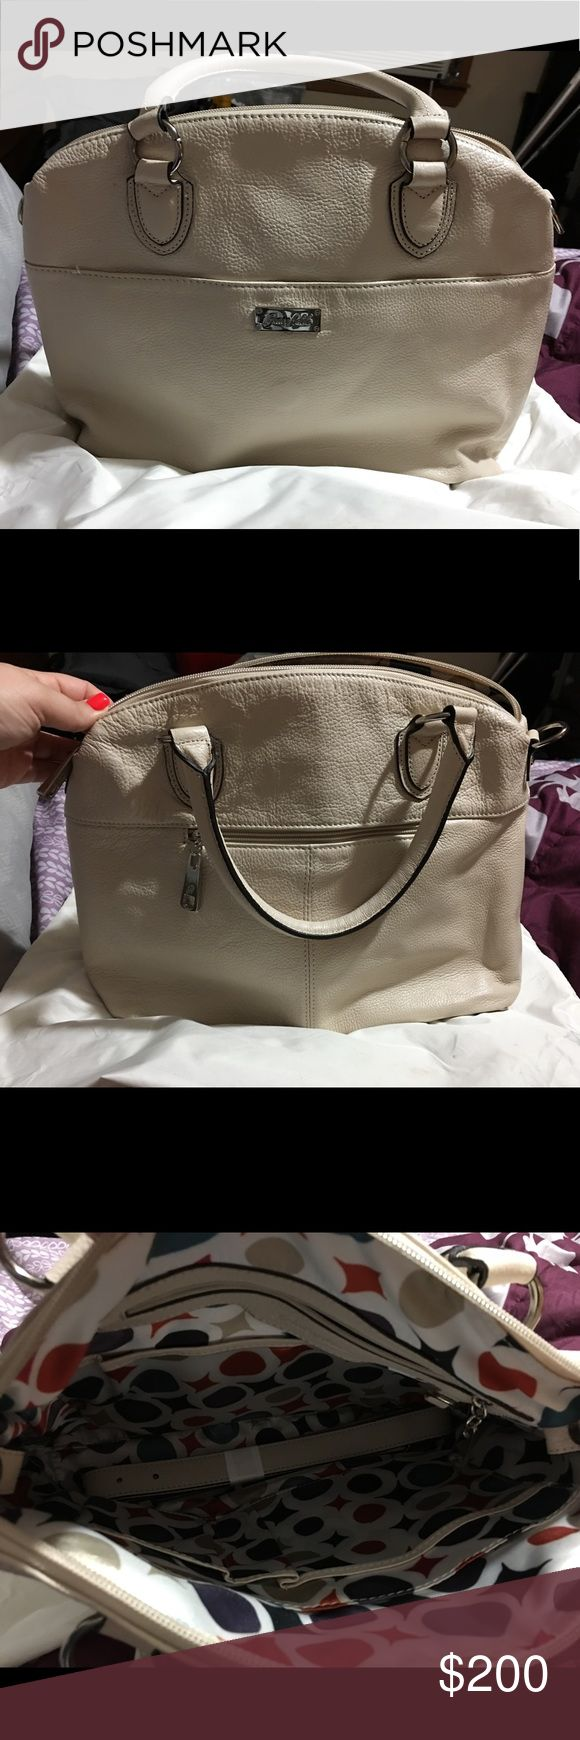 Grace Adele leather bag NWOT Grace Adele real leather purse. Never used. Longer strap included. Cream in color. Protective bag included. Wallet to match if interested. Purse has just been sitting in bag in closet. grace adele Bags Shoulder Bags